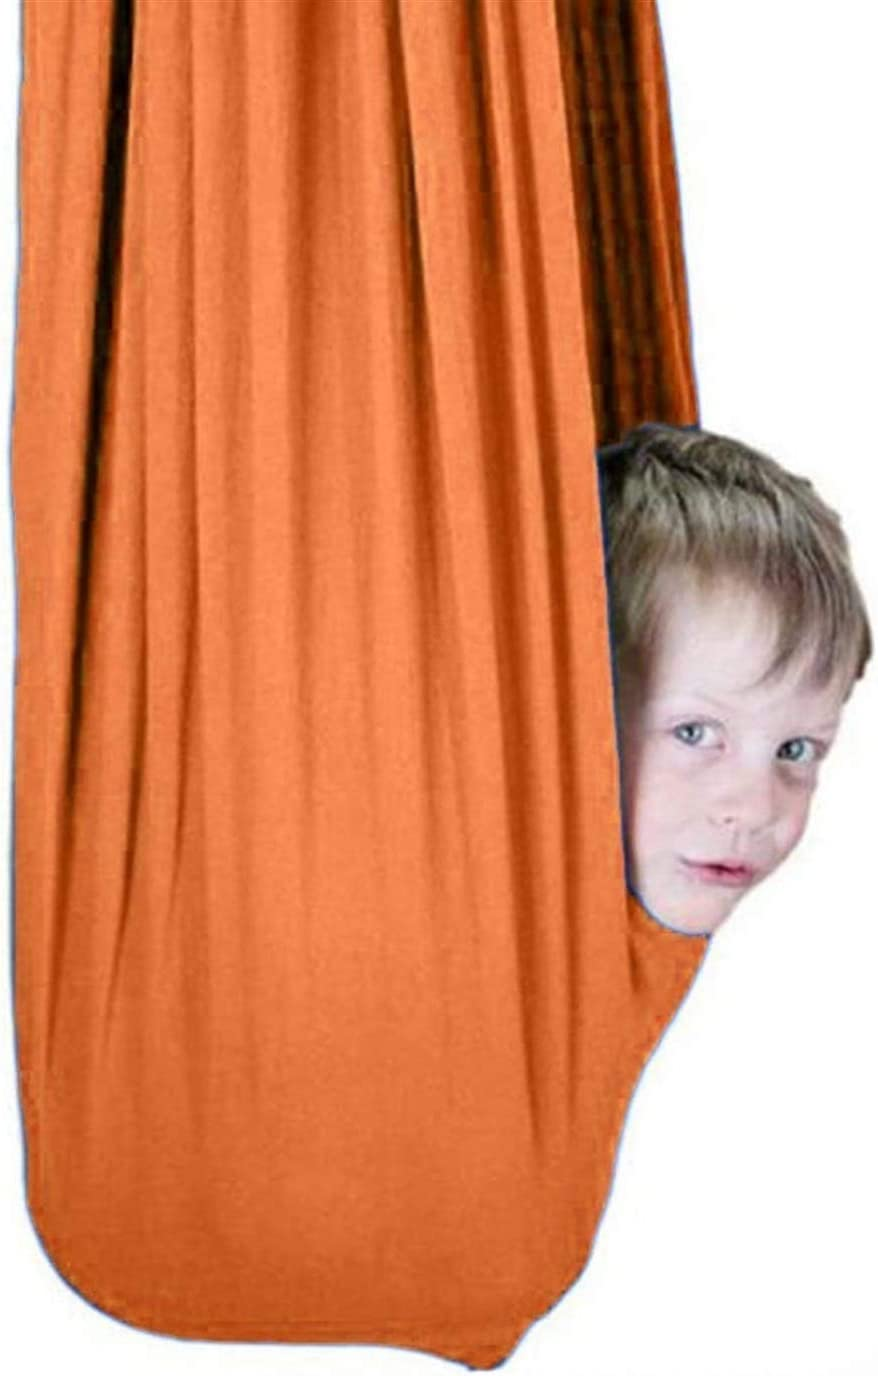 YXYH Portable In a popularity Cuddle Hammock for S Swing Indoor Kids Therapy Detroit Mall